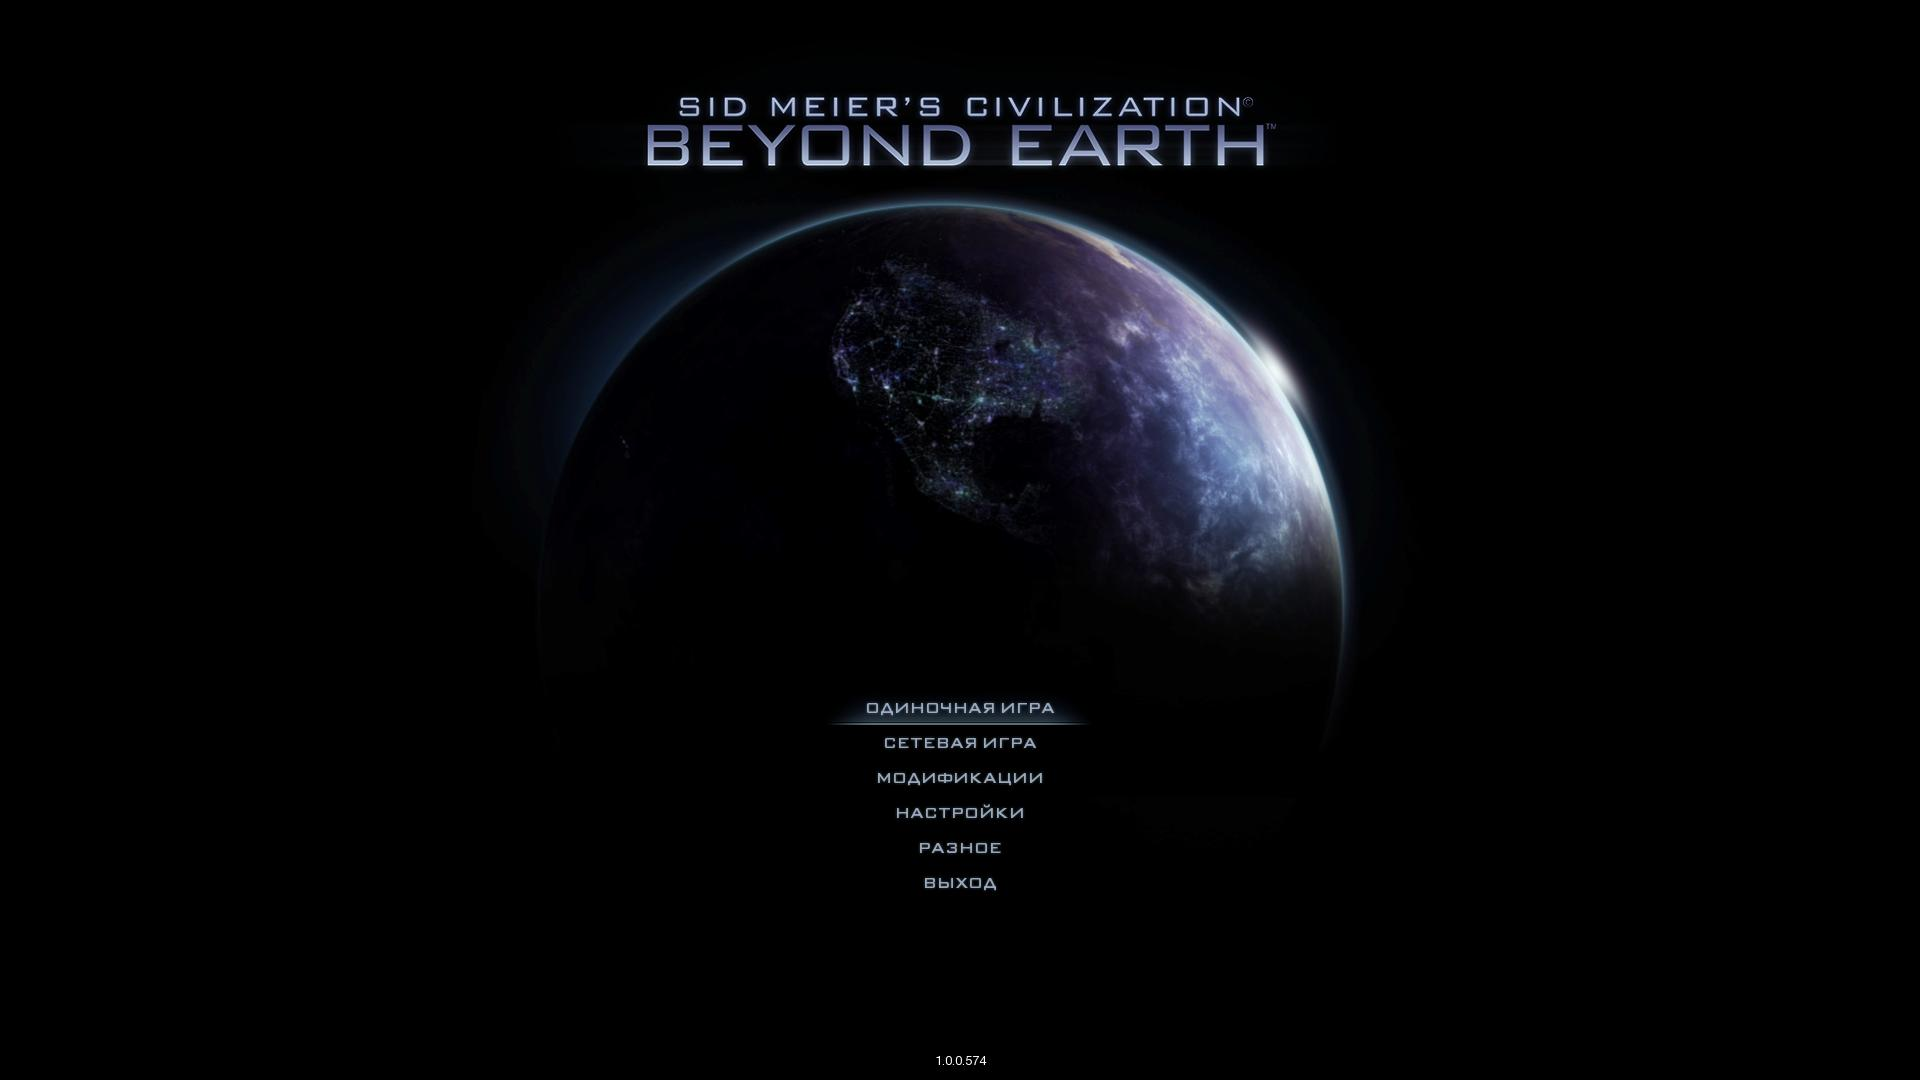 Sid Meier's Civilization: Beyond Earth (RUS|ENG) [RePack] от R.G. Механики - Скриншот 3